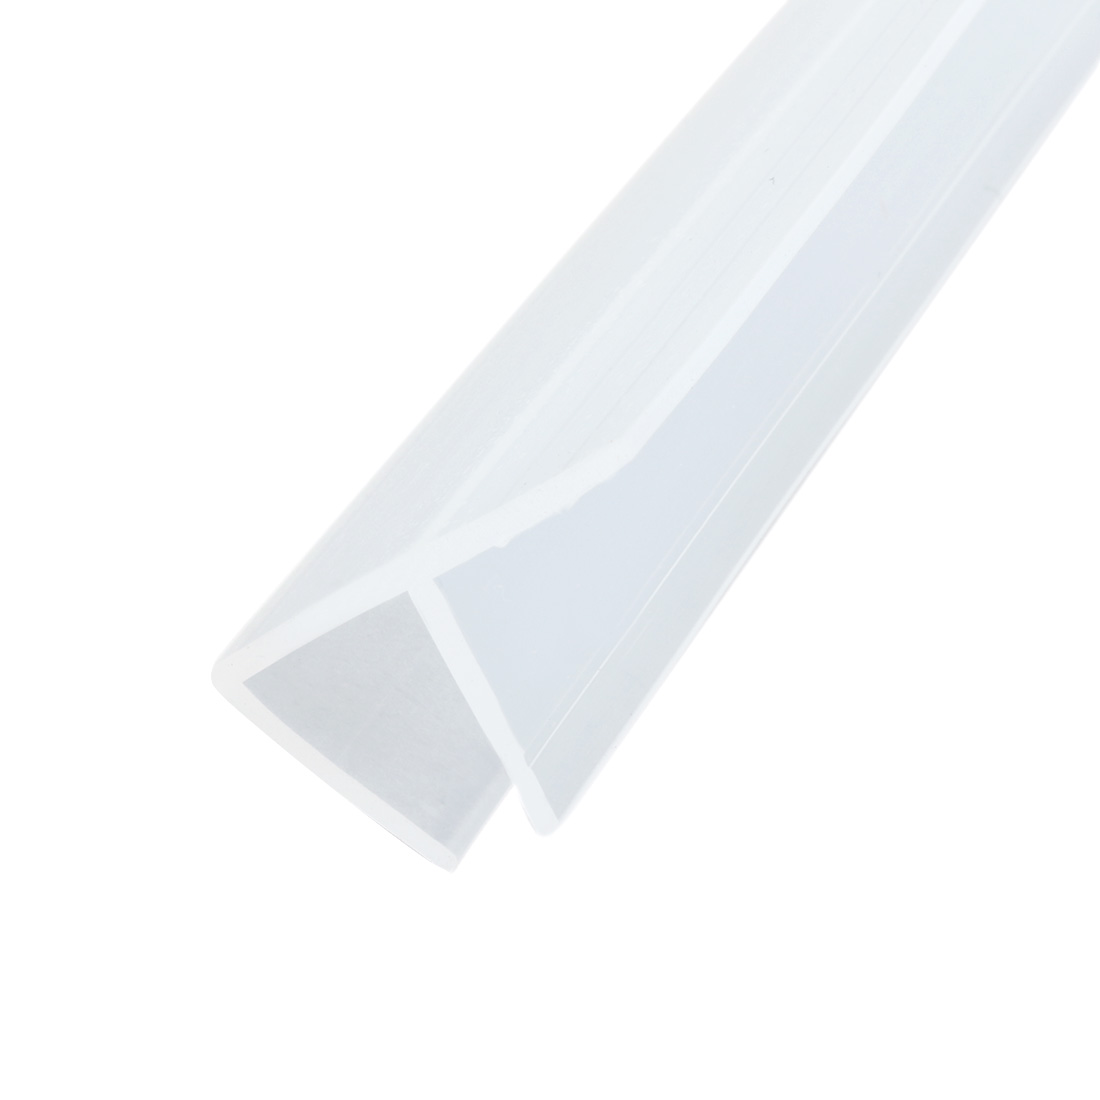 39-inch F Shaped Frameless Window Shower Door Seal Clear for 8mm (approx 5/16-inch) Glass